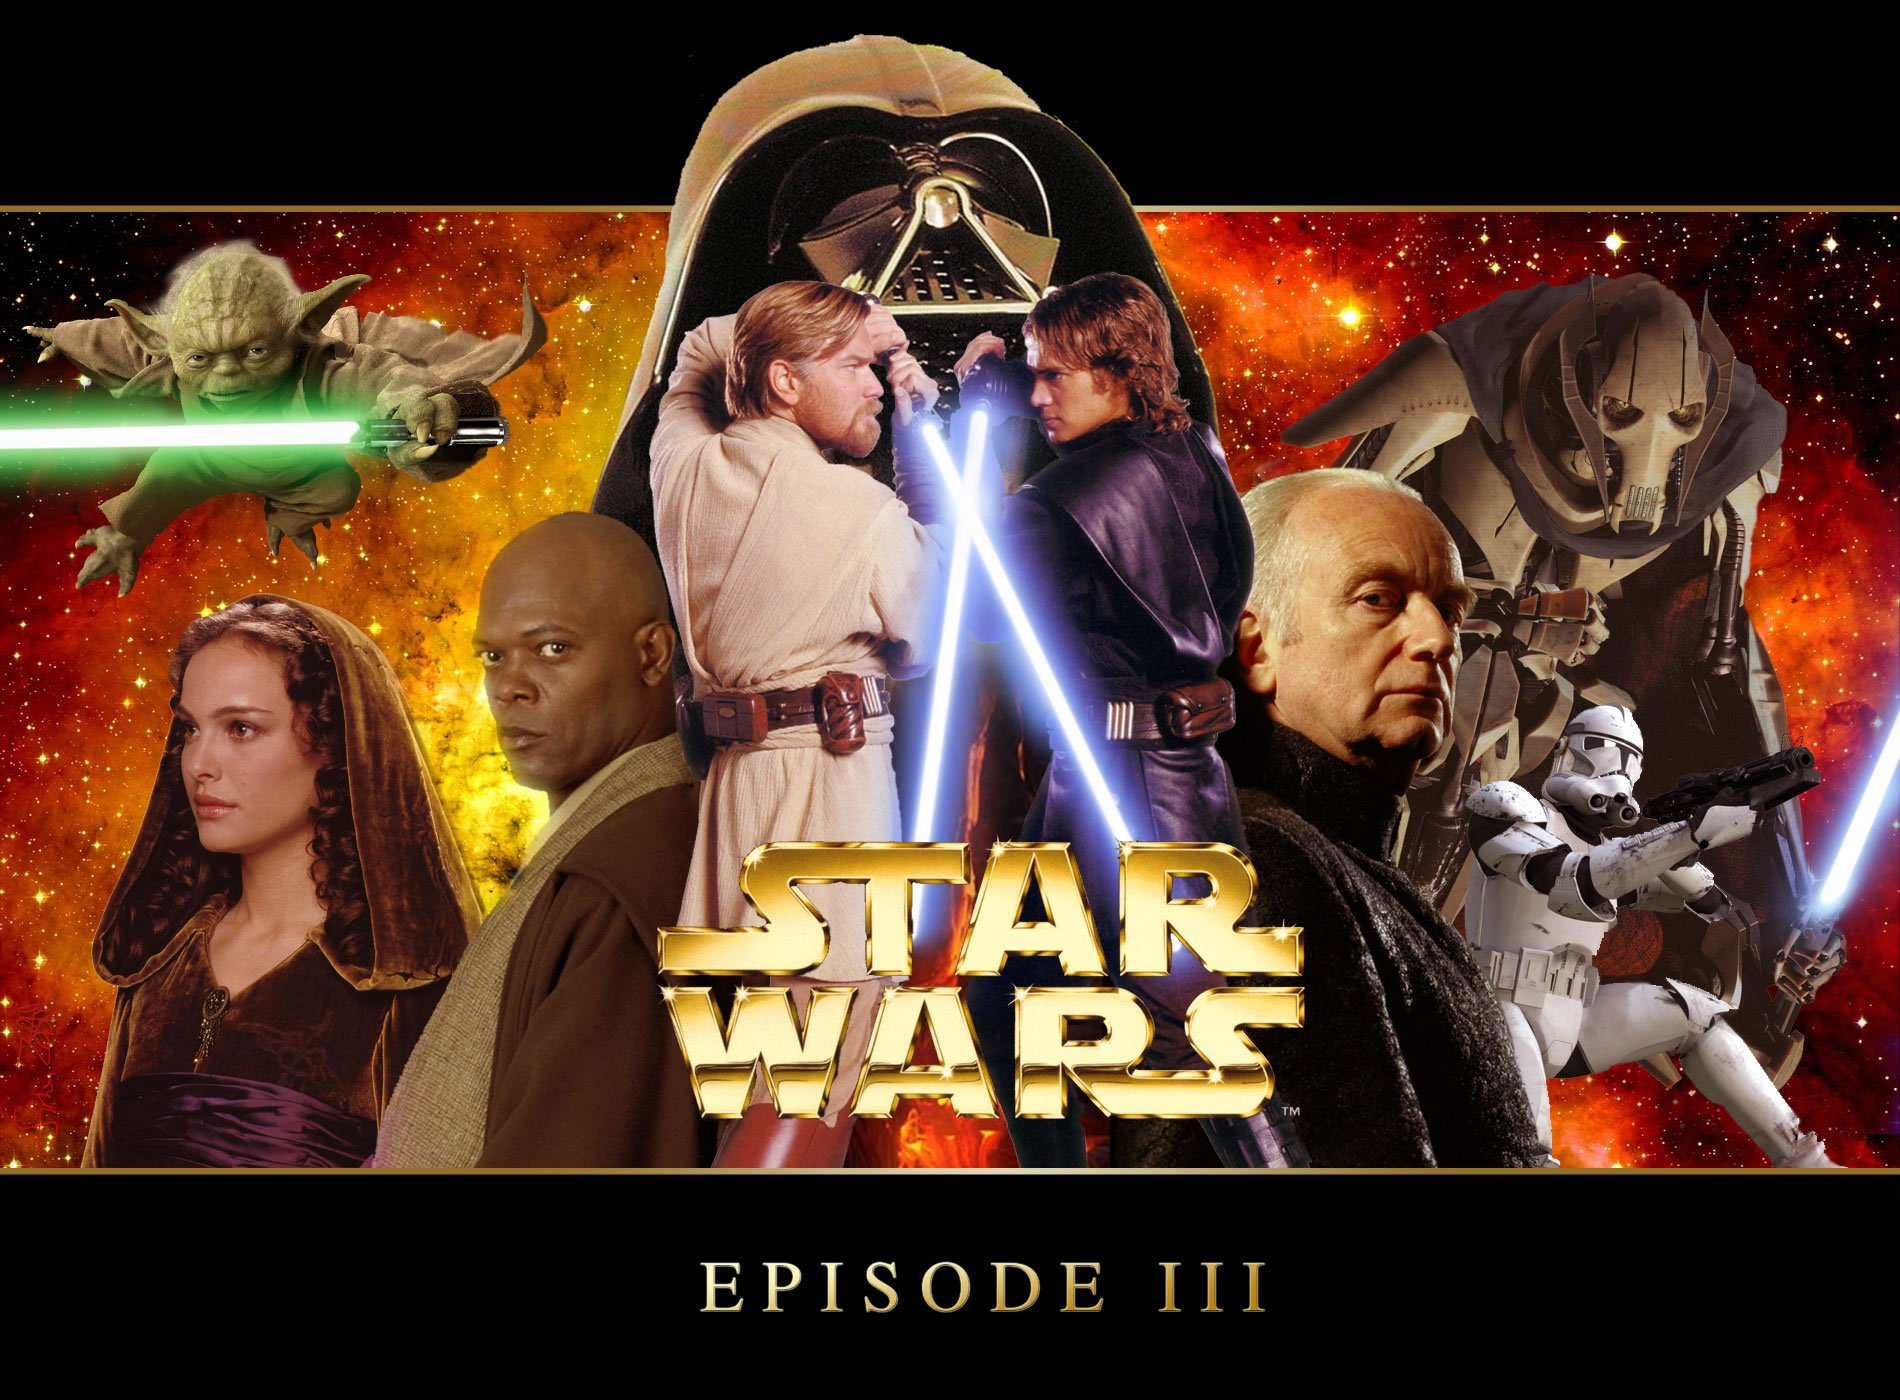 31 Star Wars Episode Iii Revenge Of The Sith Hd Wallpapers